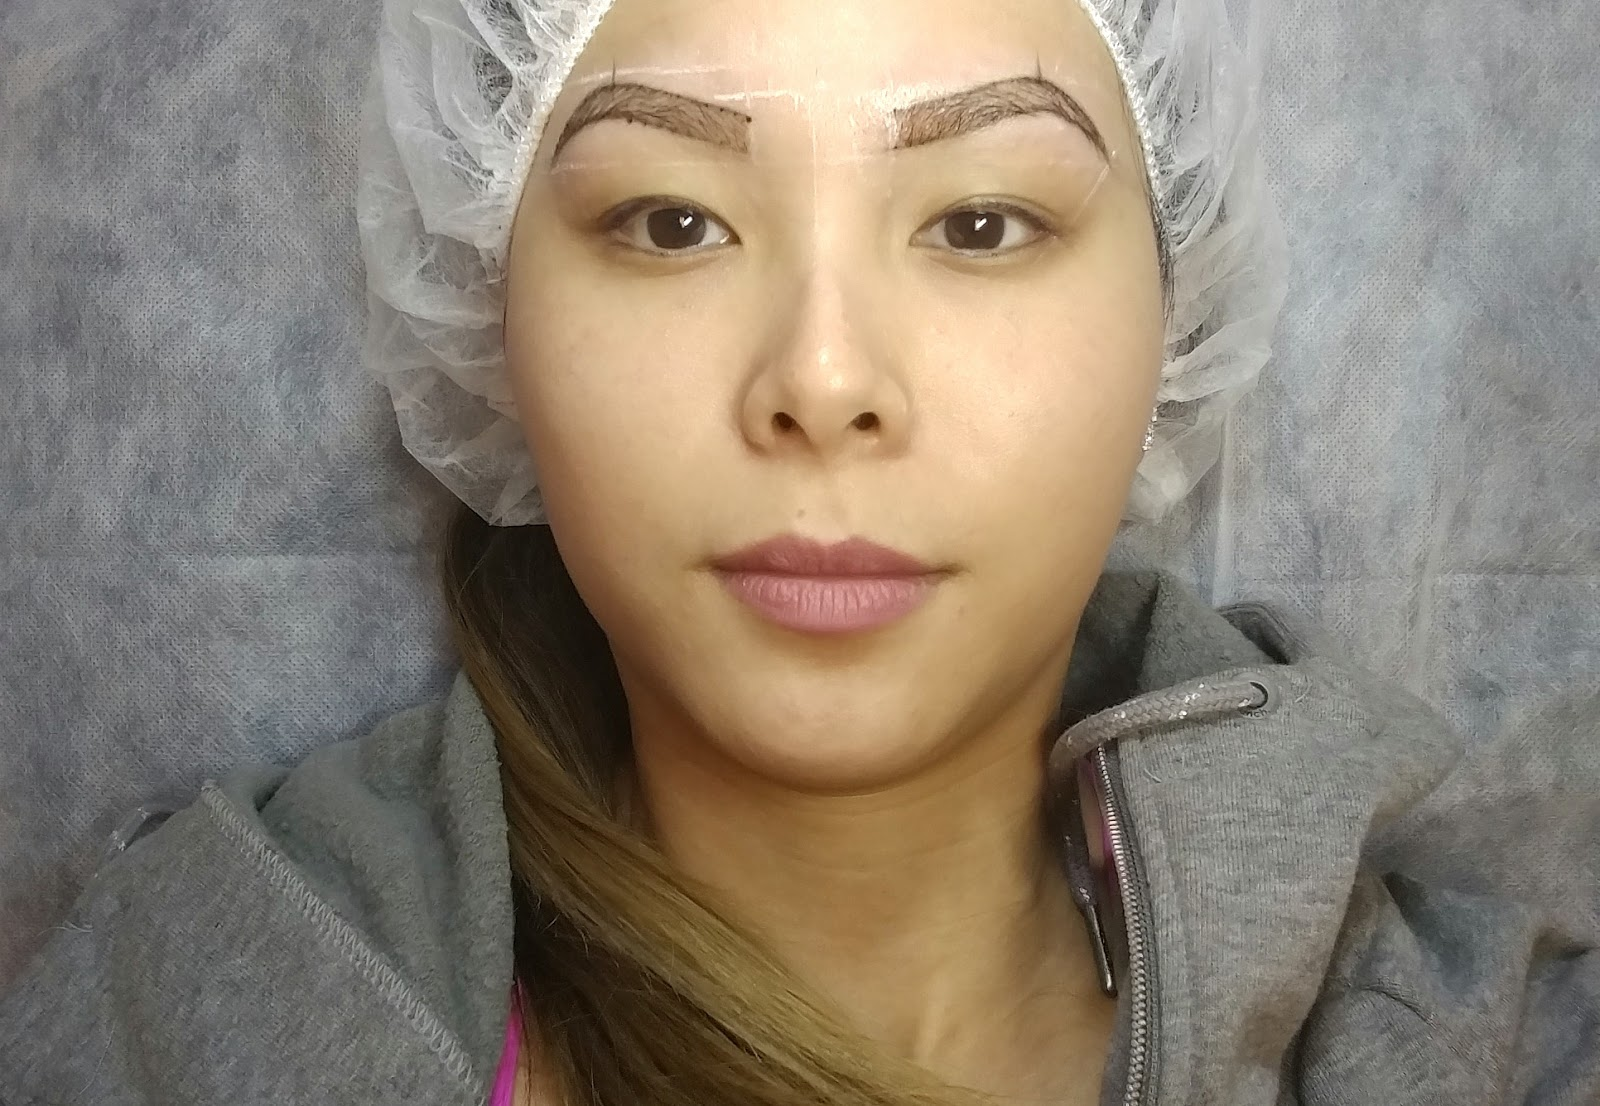 Experience Getting My Eyebrows Microbladed With The Brow